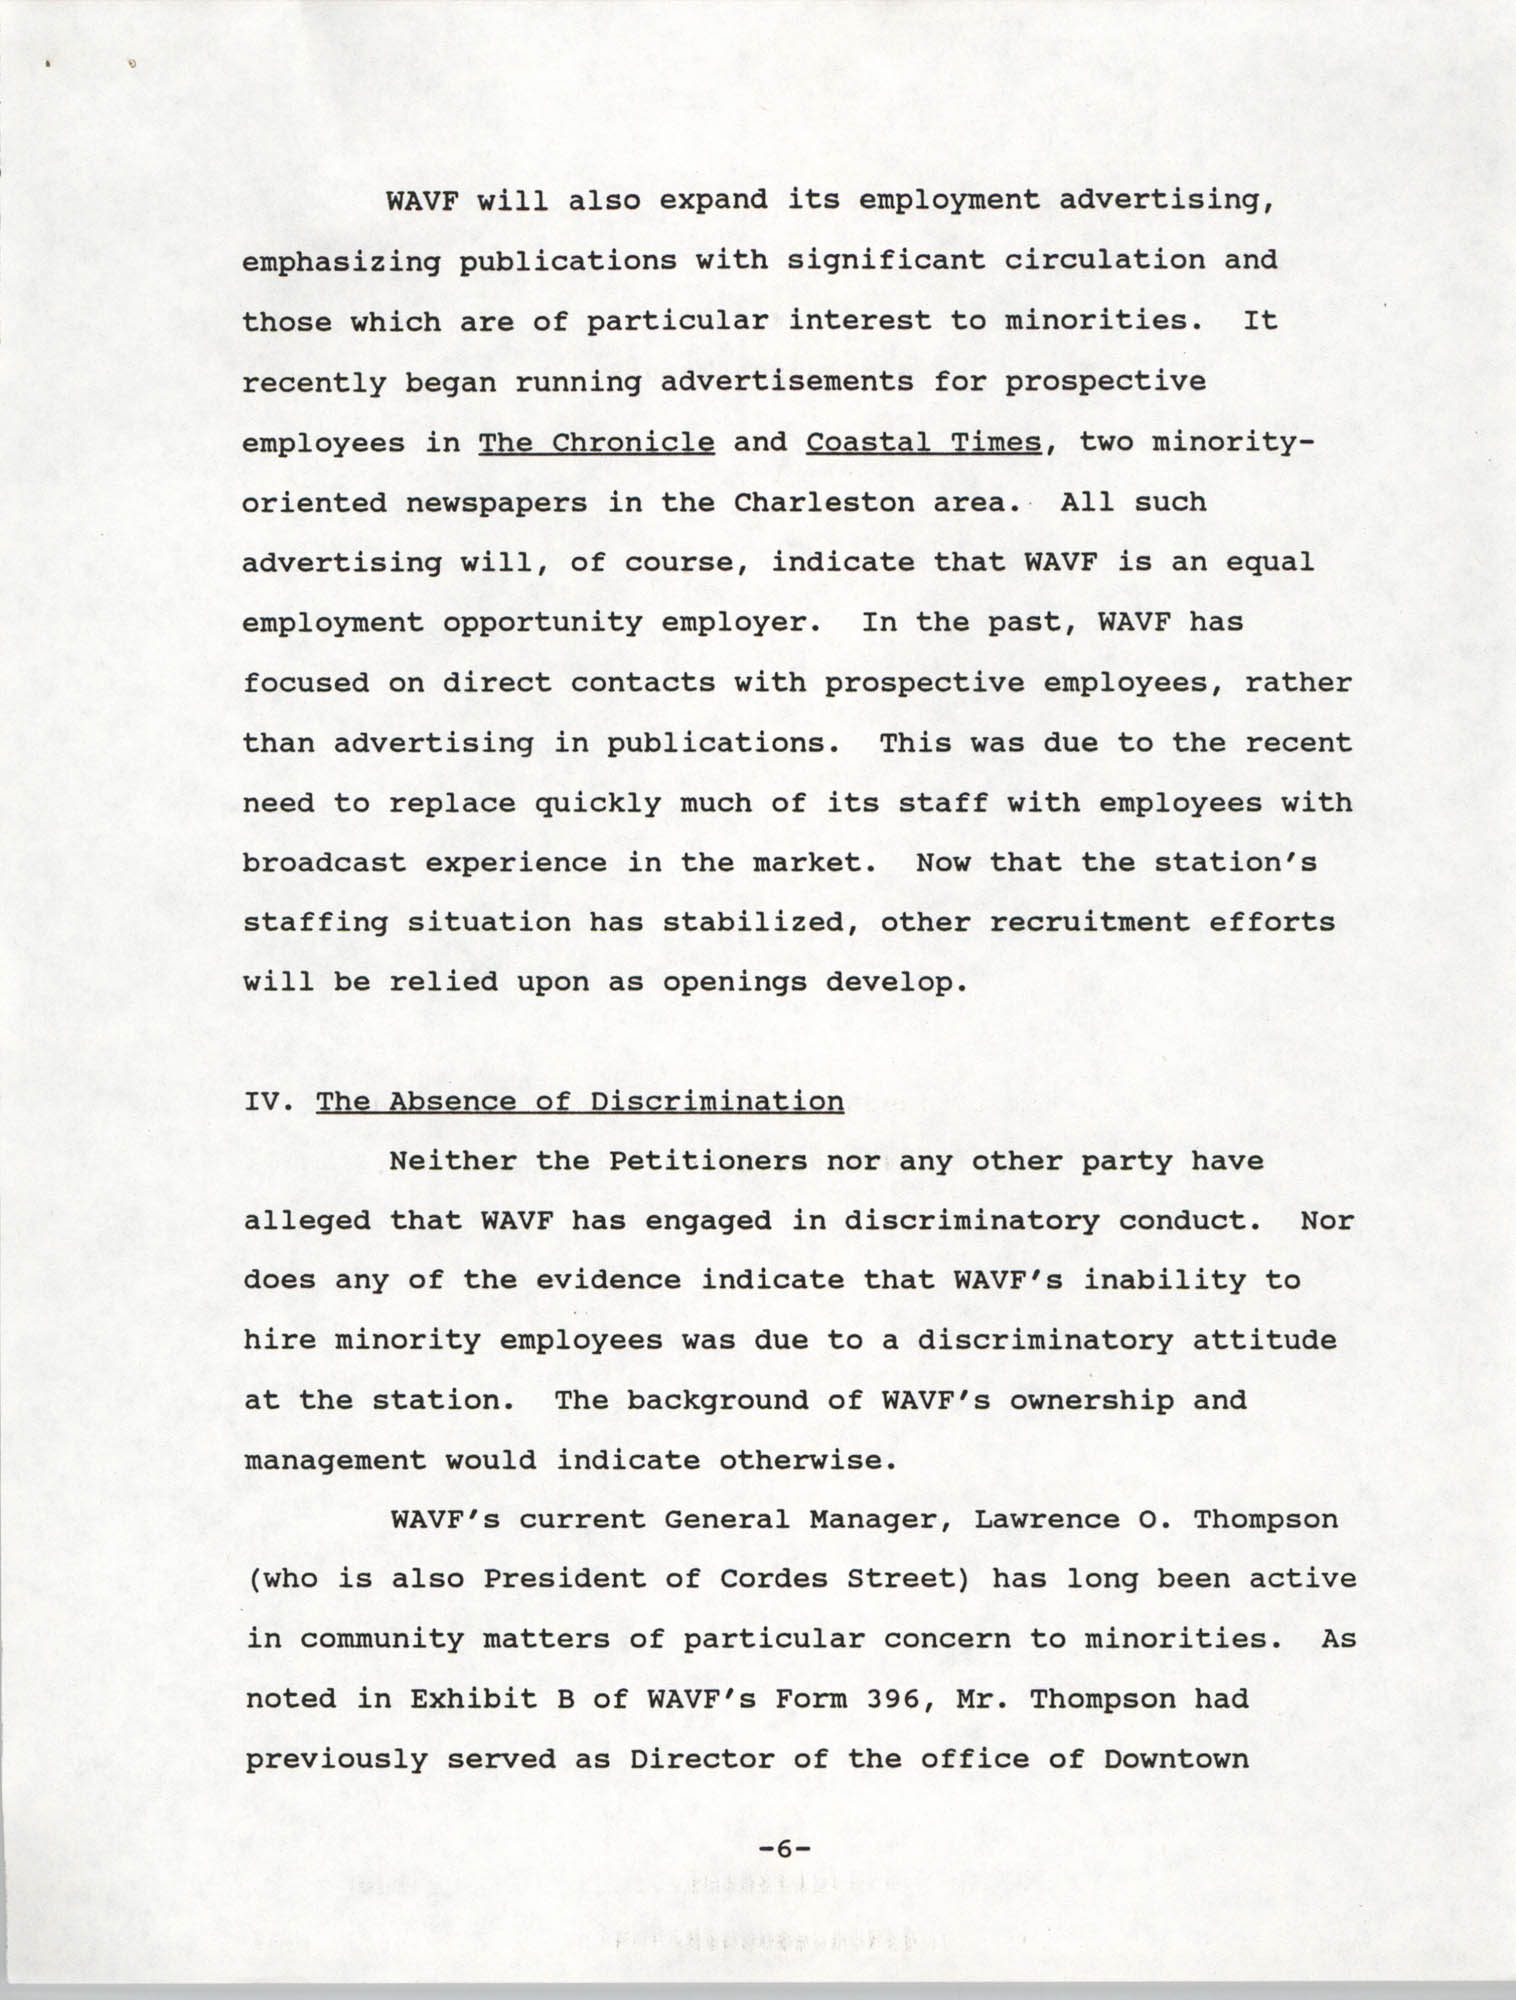 Federal Communications Commission In the Matter of Cordes Street Communications, Inc., Page 6